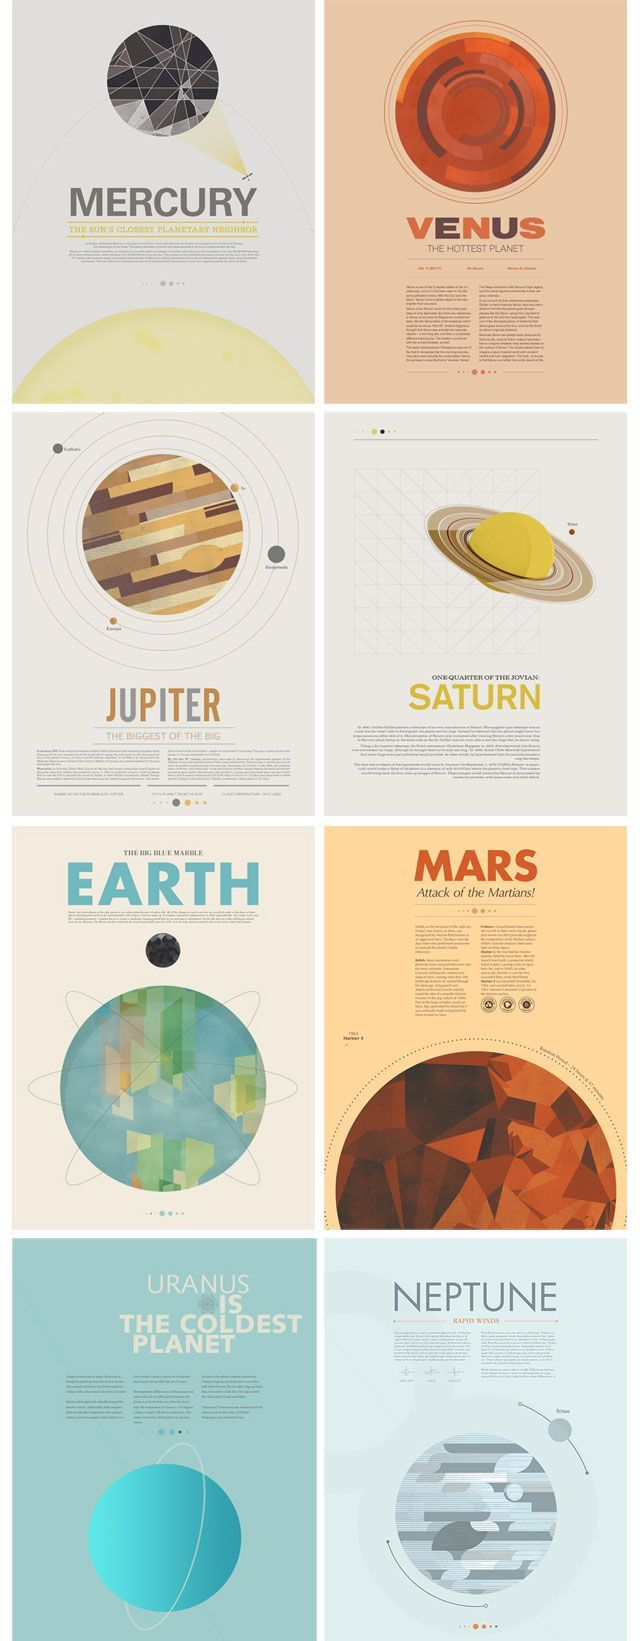 Poster design layout ideas - Beyond Earth A Minimal Poster Series By Stephen Di Donato Good Ideas For Space